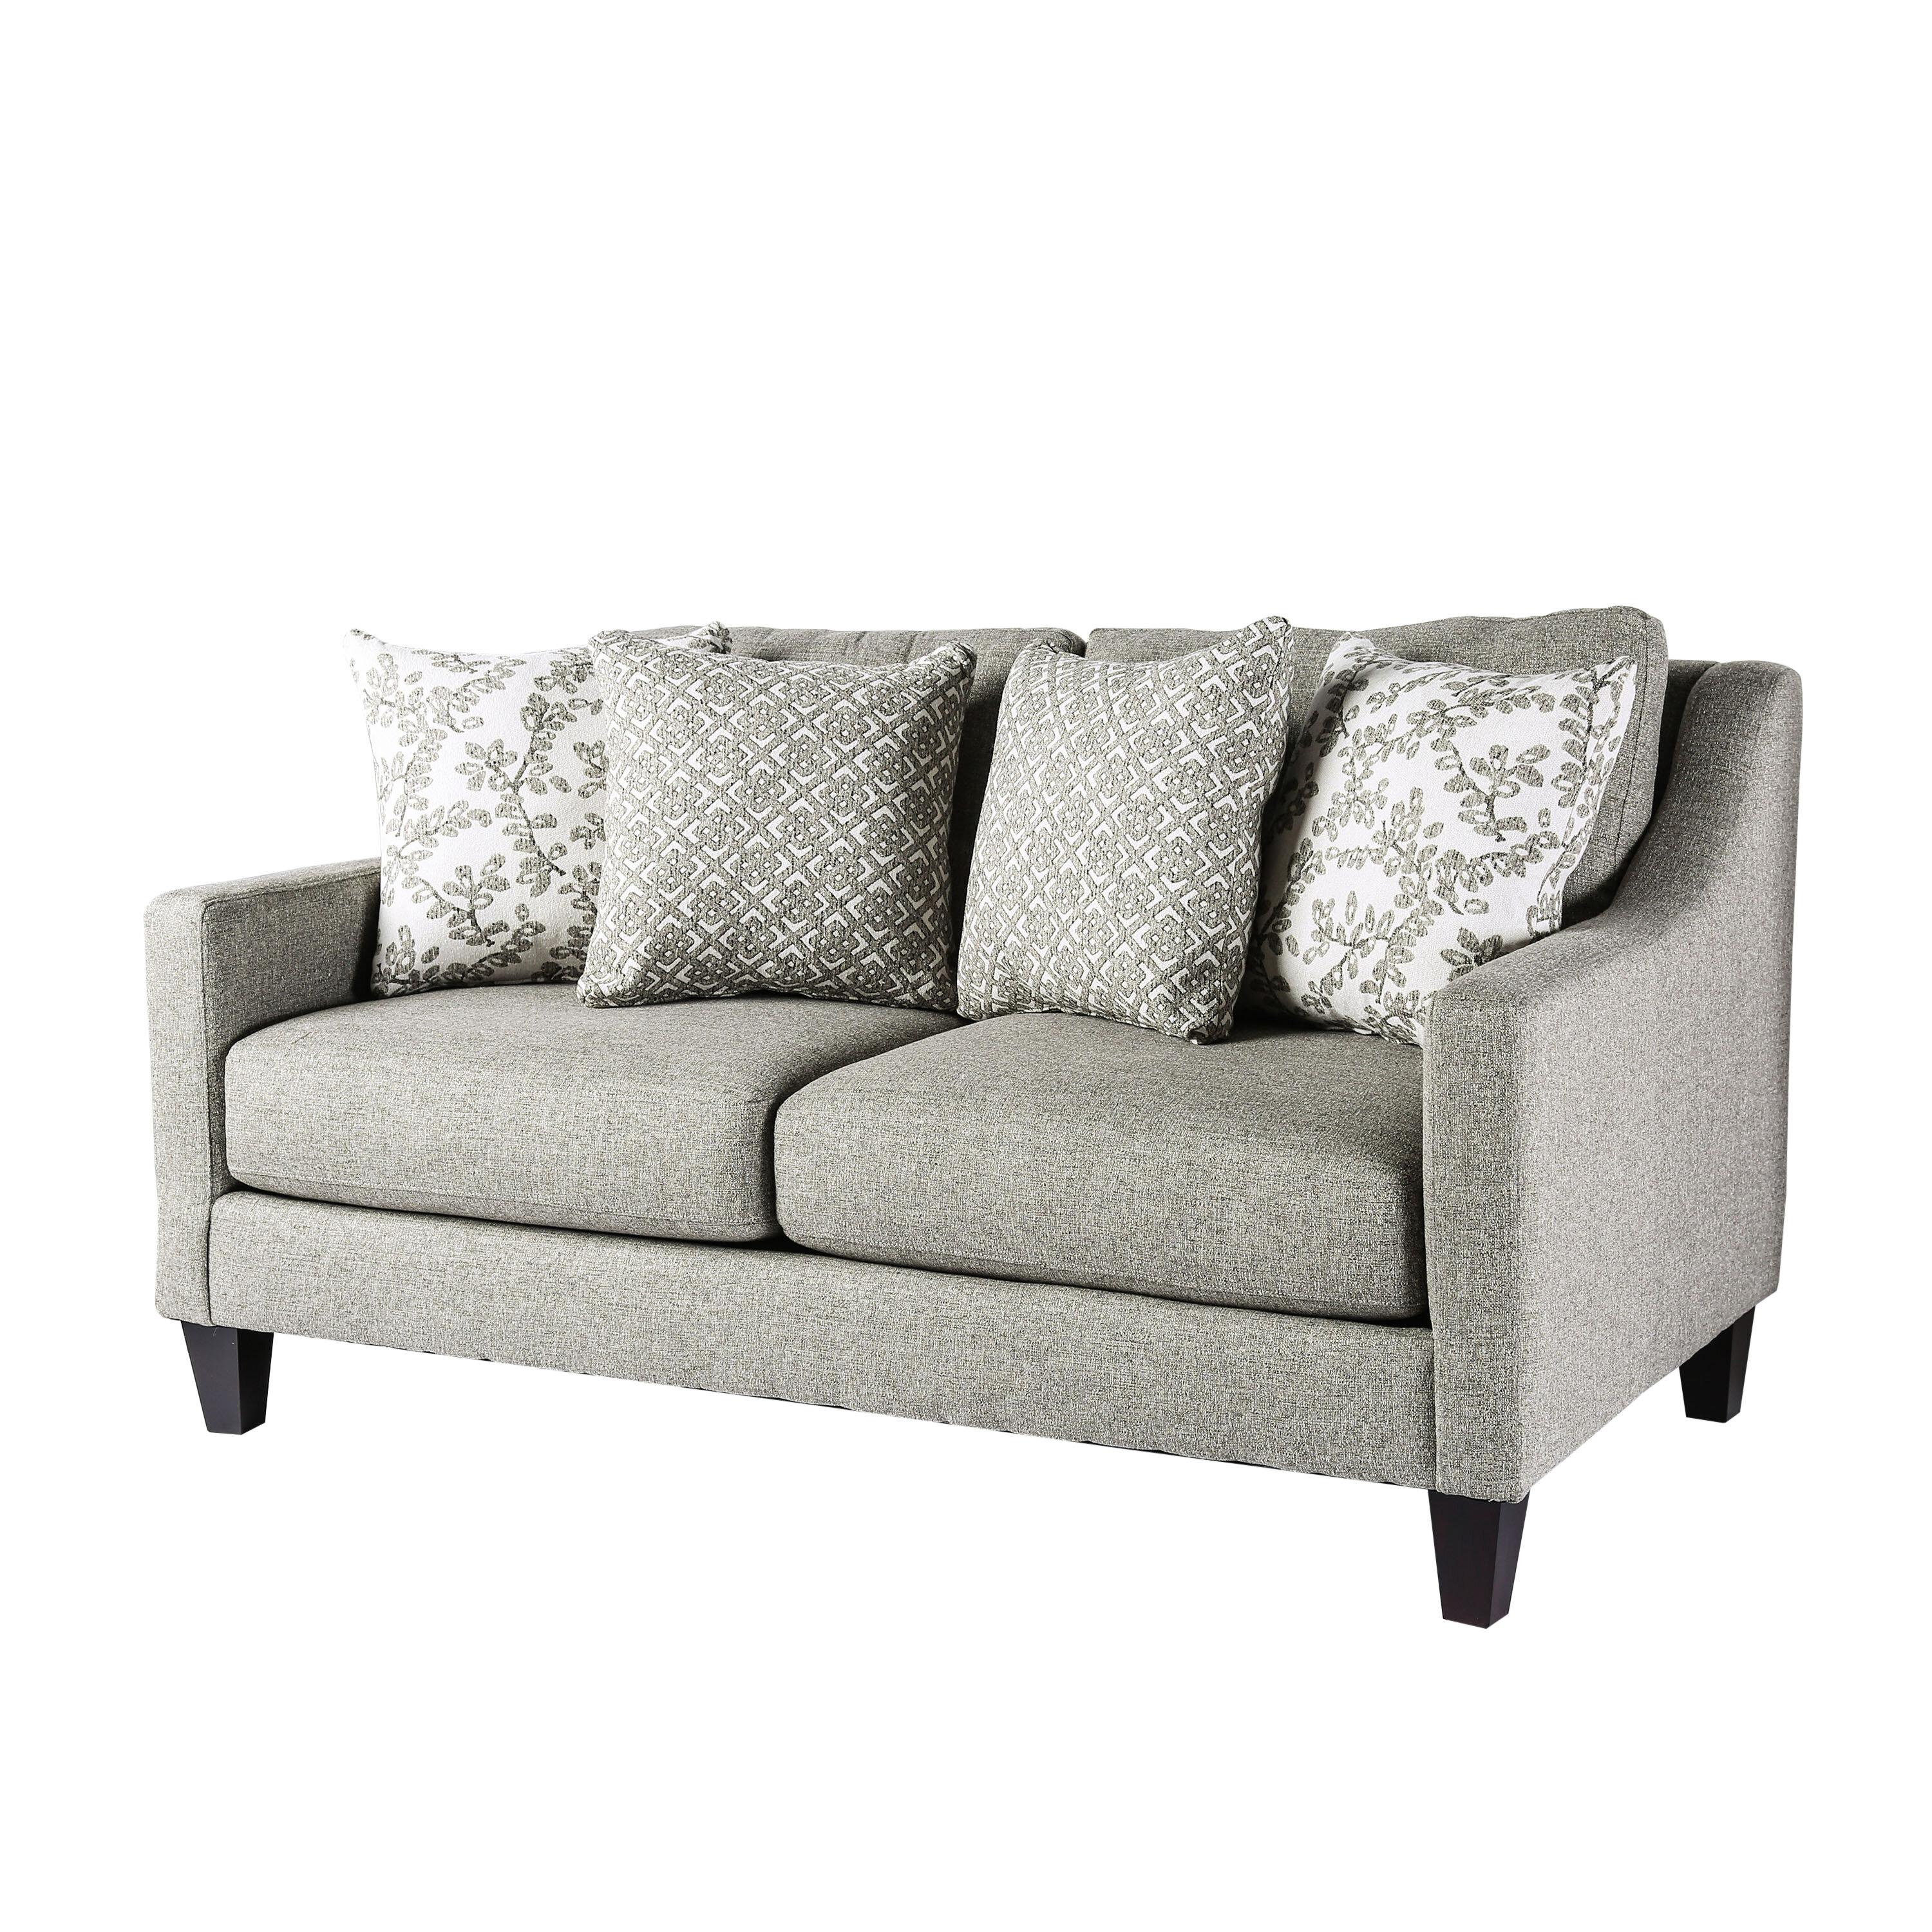 Tremendous Canby Stain Resistant Loveseat Onthecornerstone Fun Painted Chair Ideas Images Onthecornerstoneorg